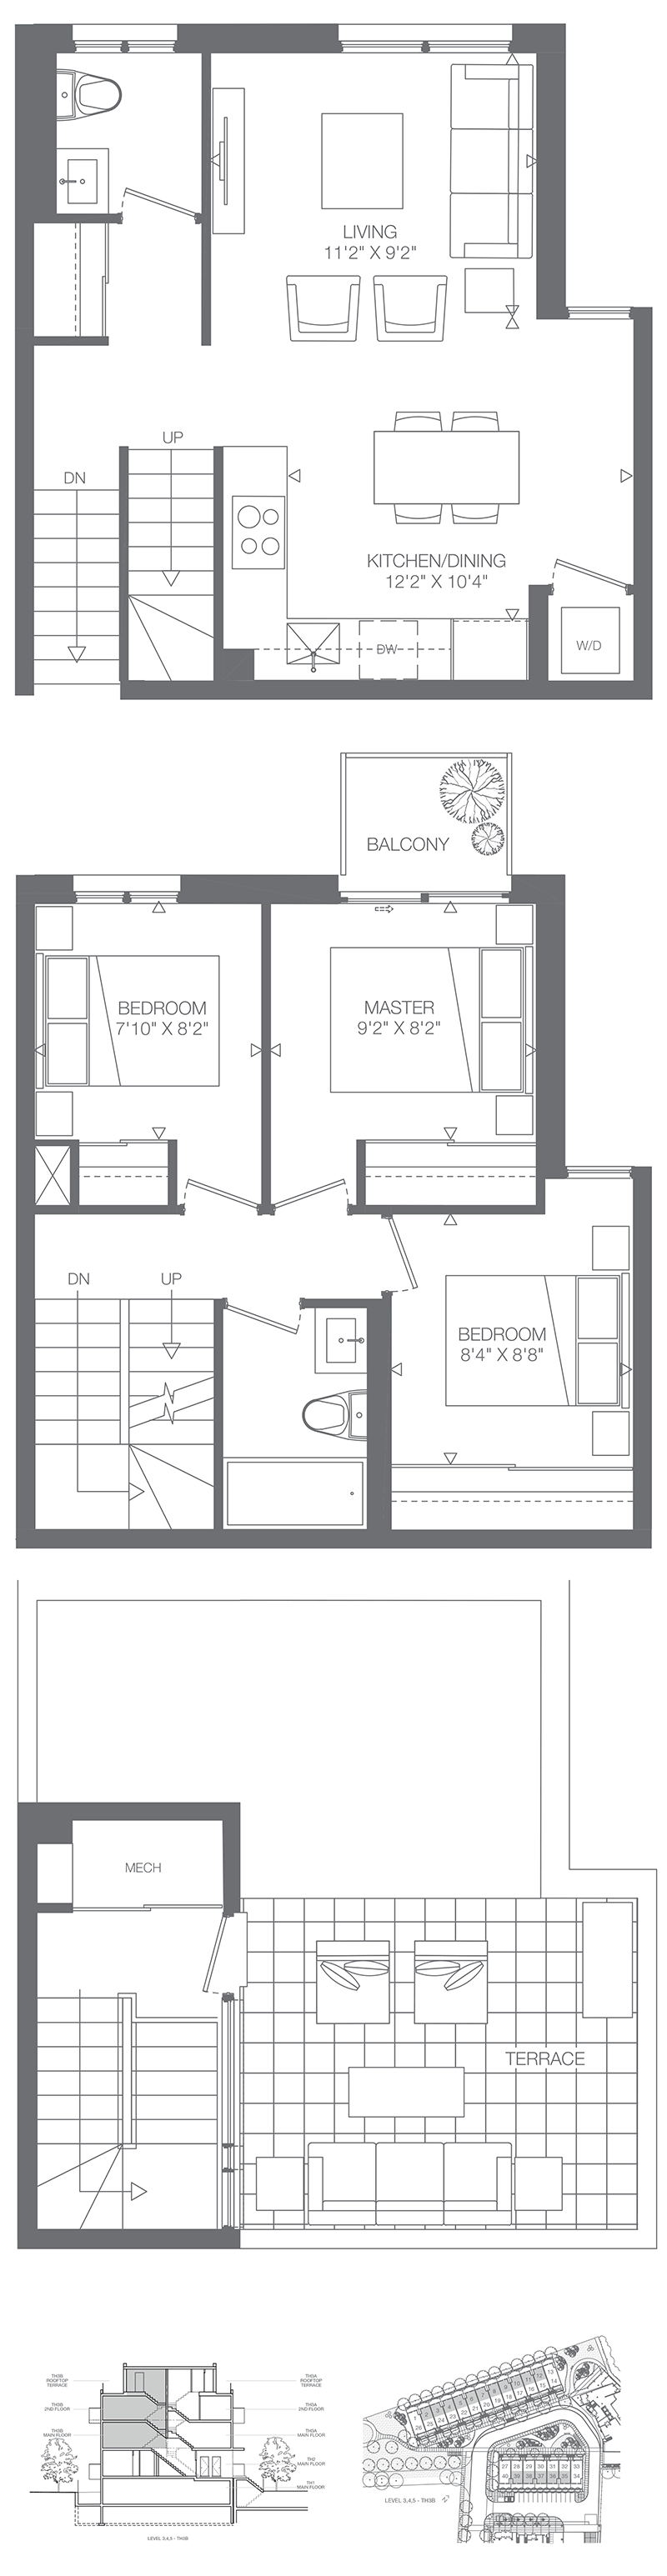 Floorplans For 1 Bedroom Townhomes Kingsway By The River